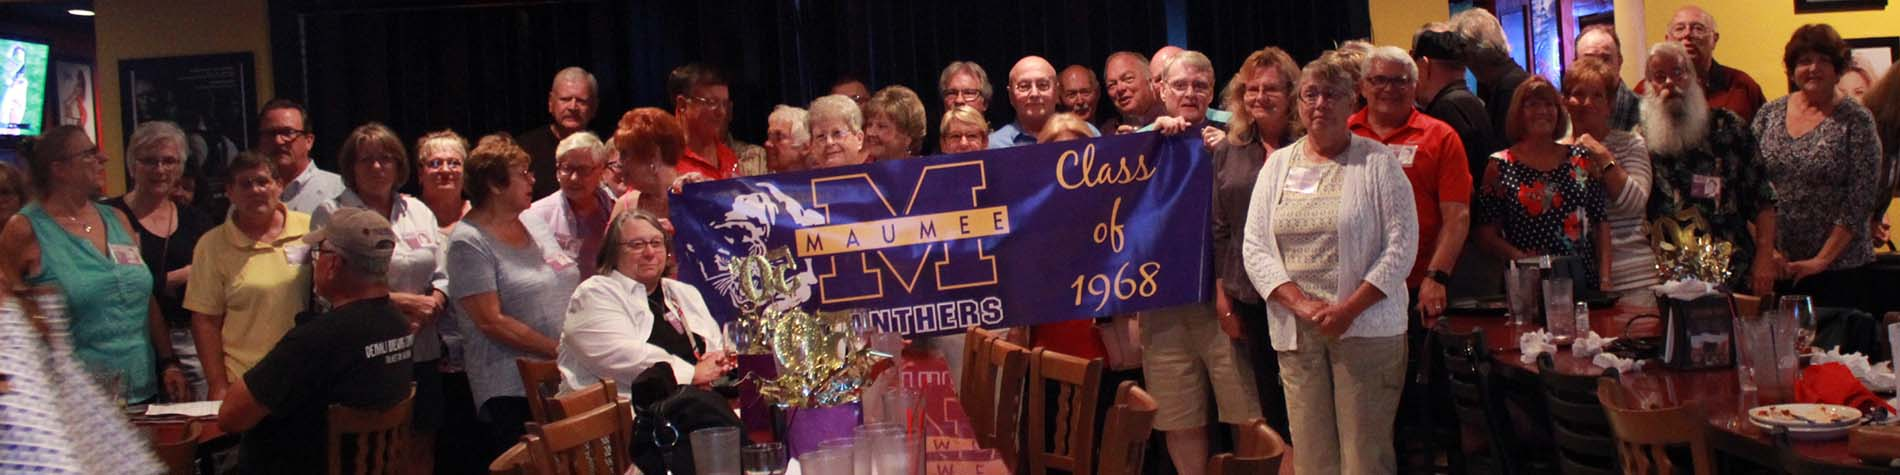 Maumee High School Class of '68